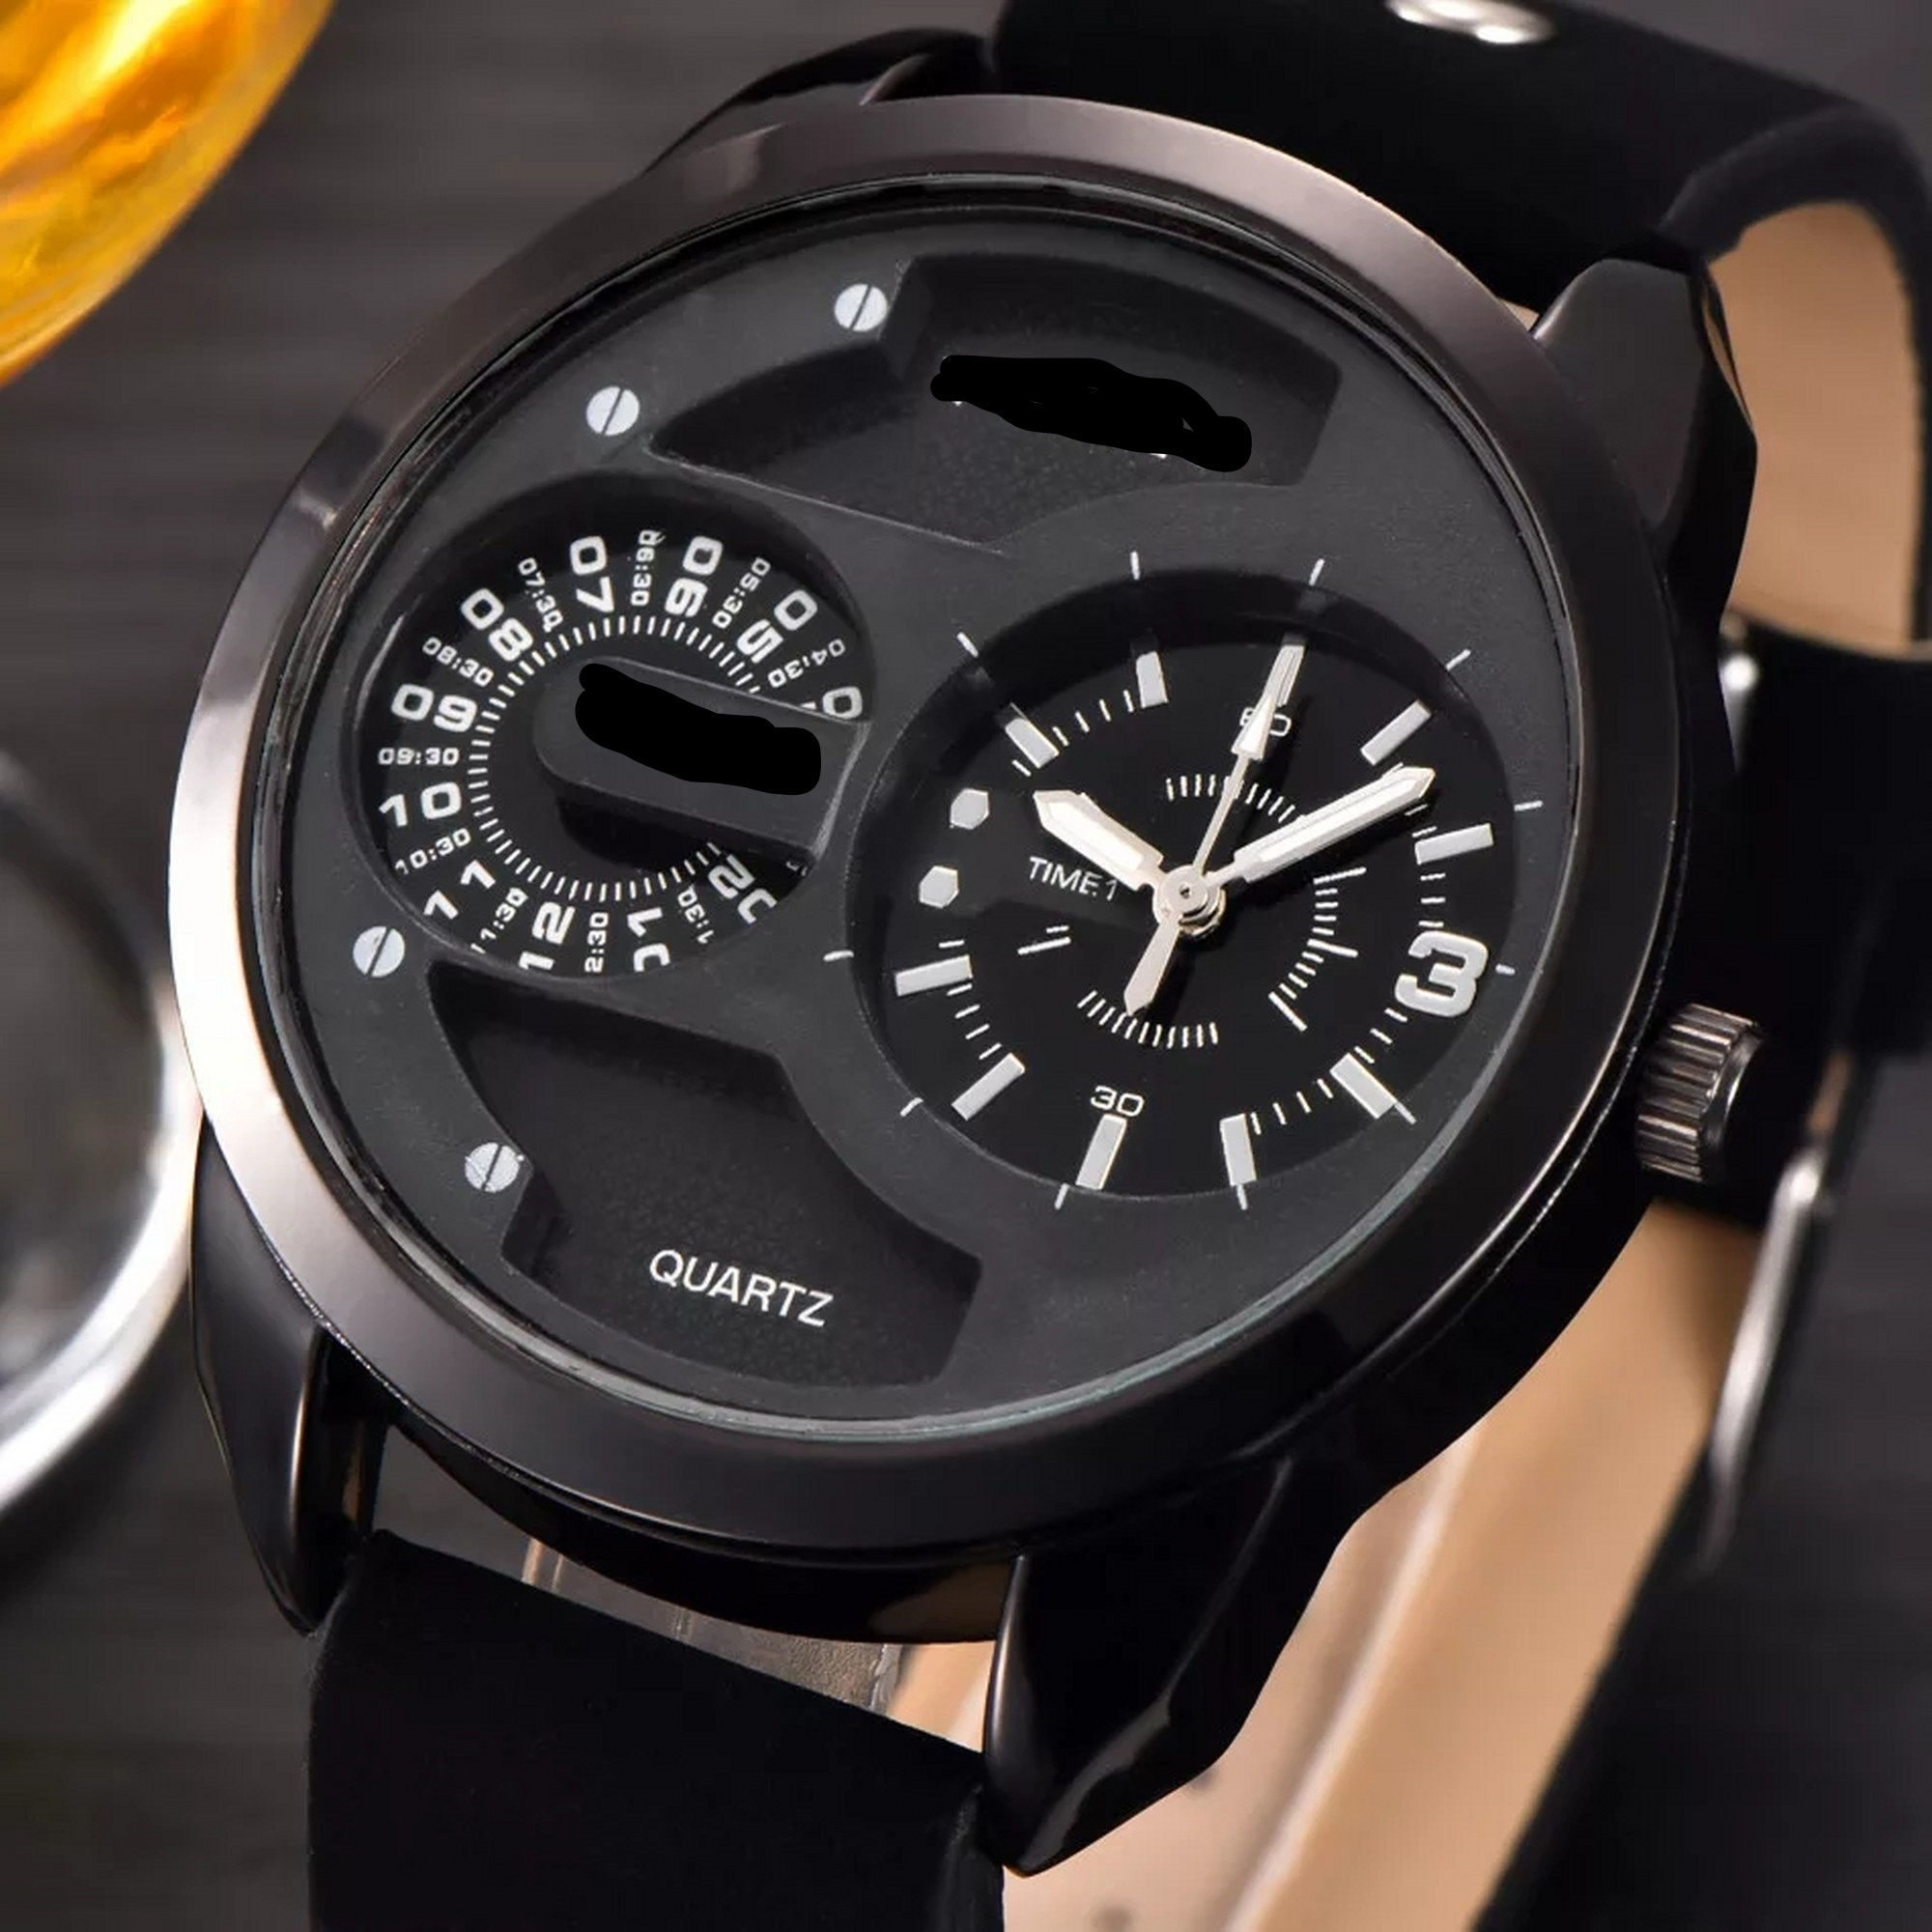 Black and Brown stylish Rubber/Silicon Strap Watch for boys & Girls with Box -unisex- Watches for men